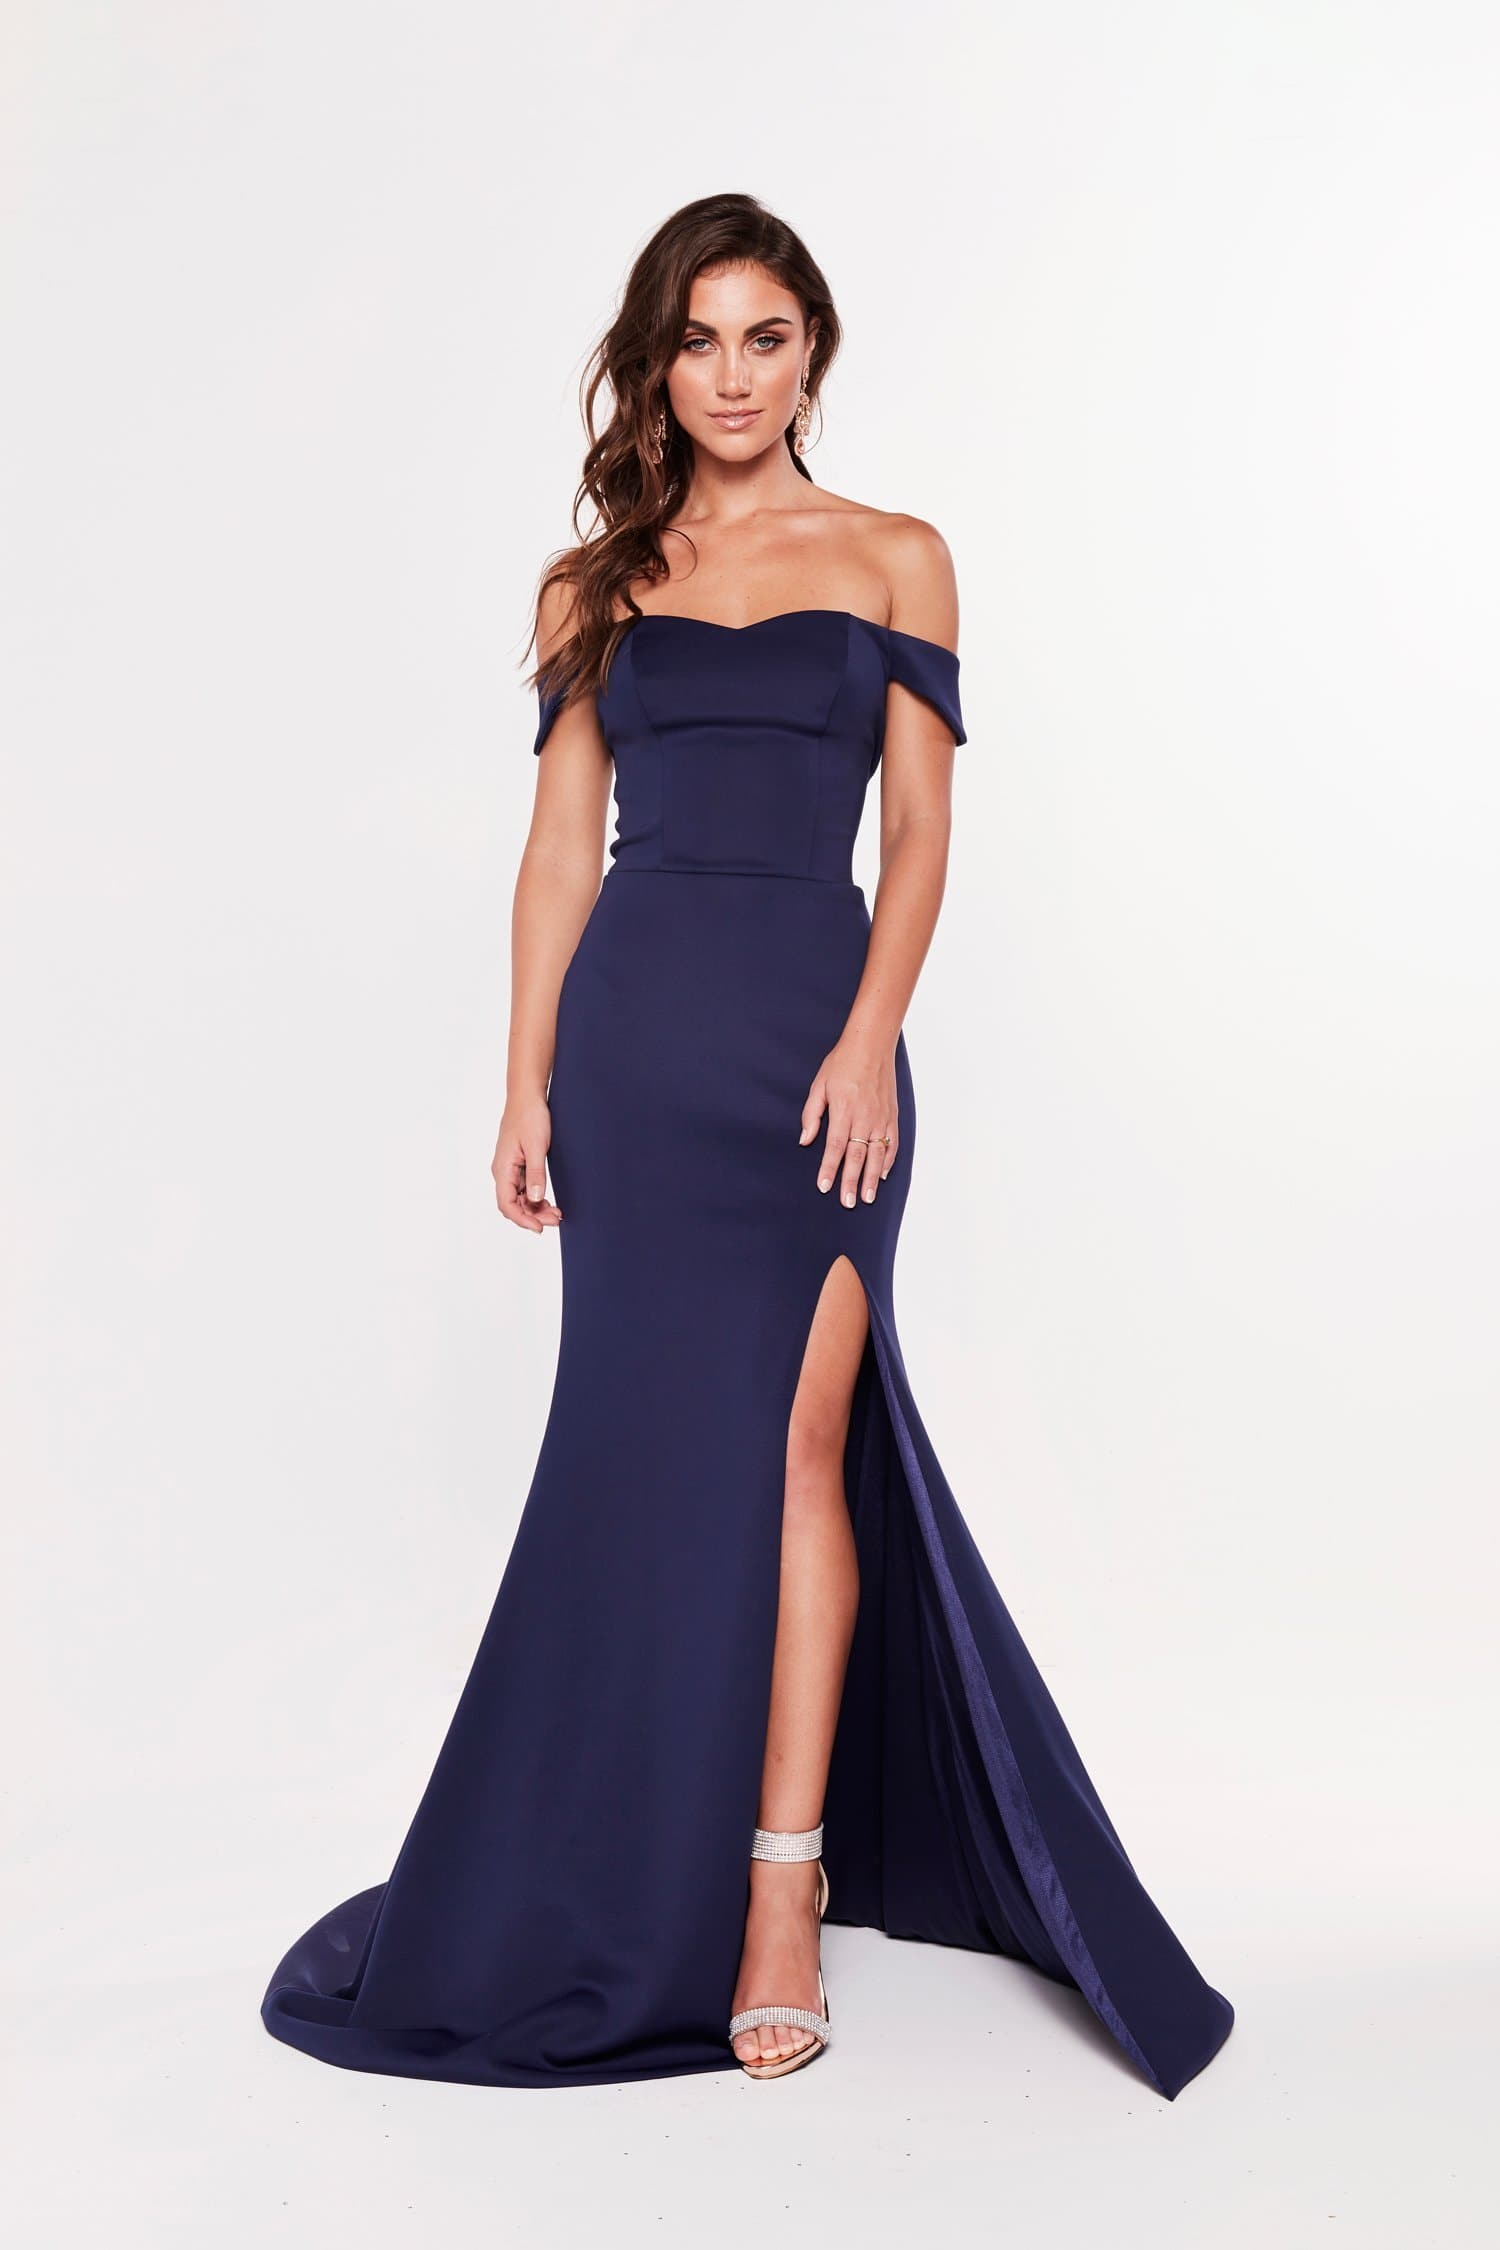 A&N Belle - Navy Off the Shoulder Ponti Gown with Side Slit